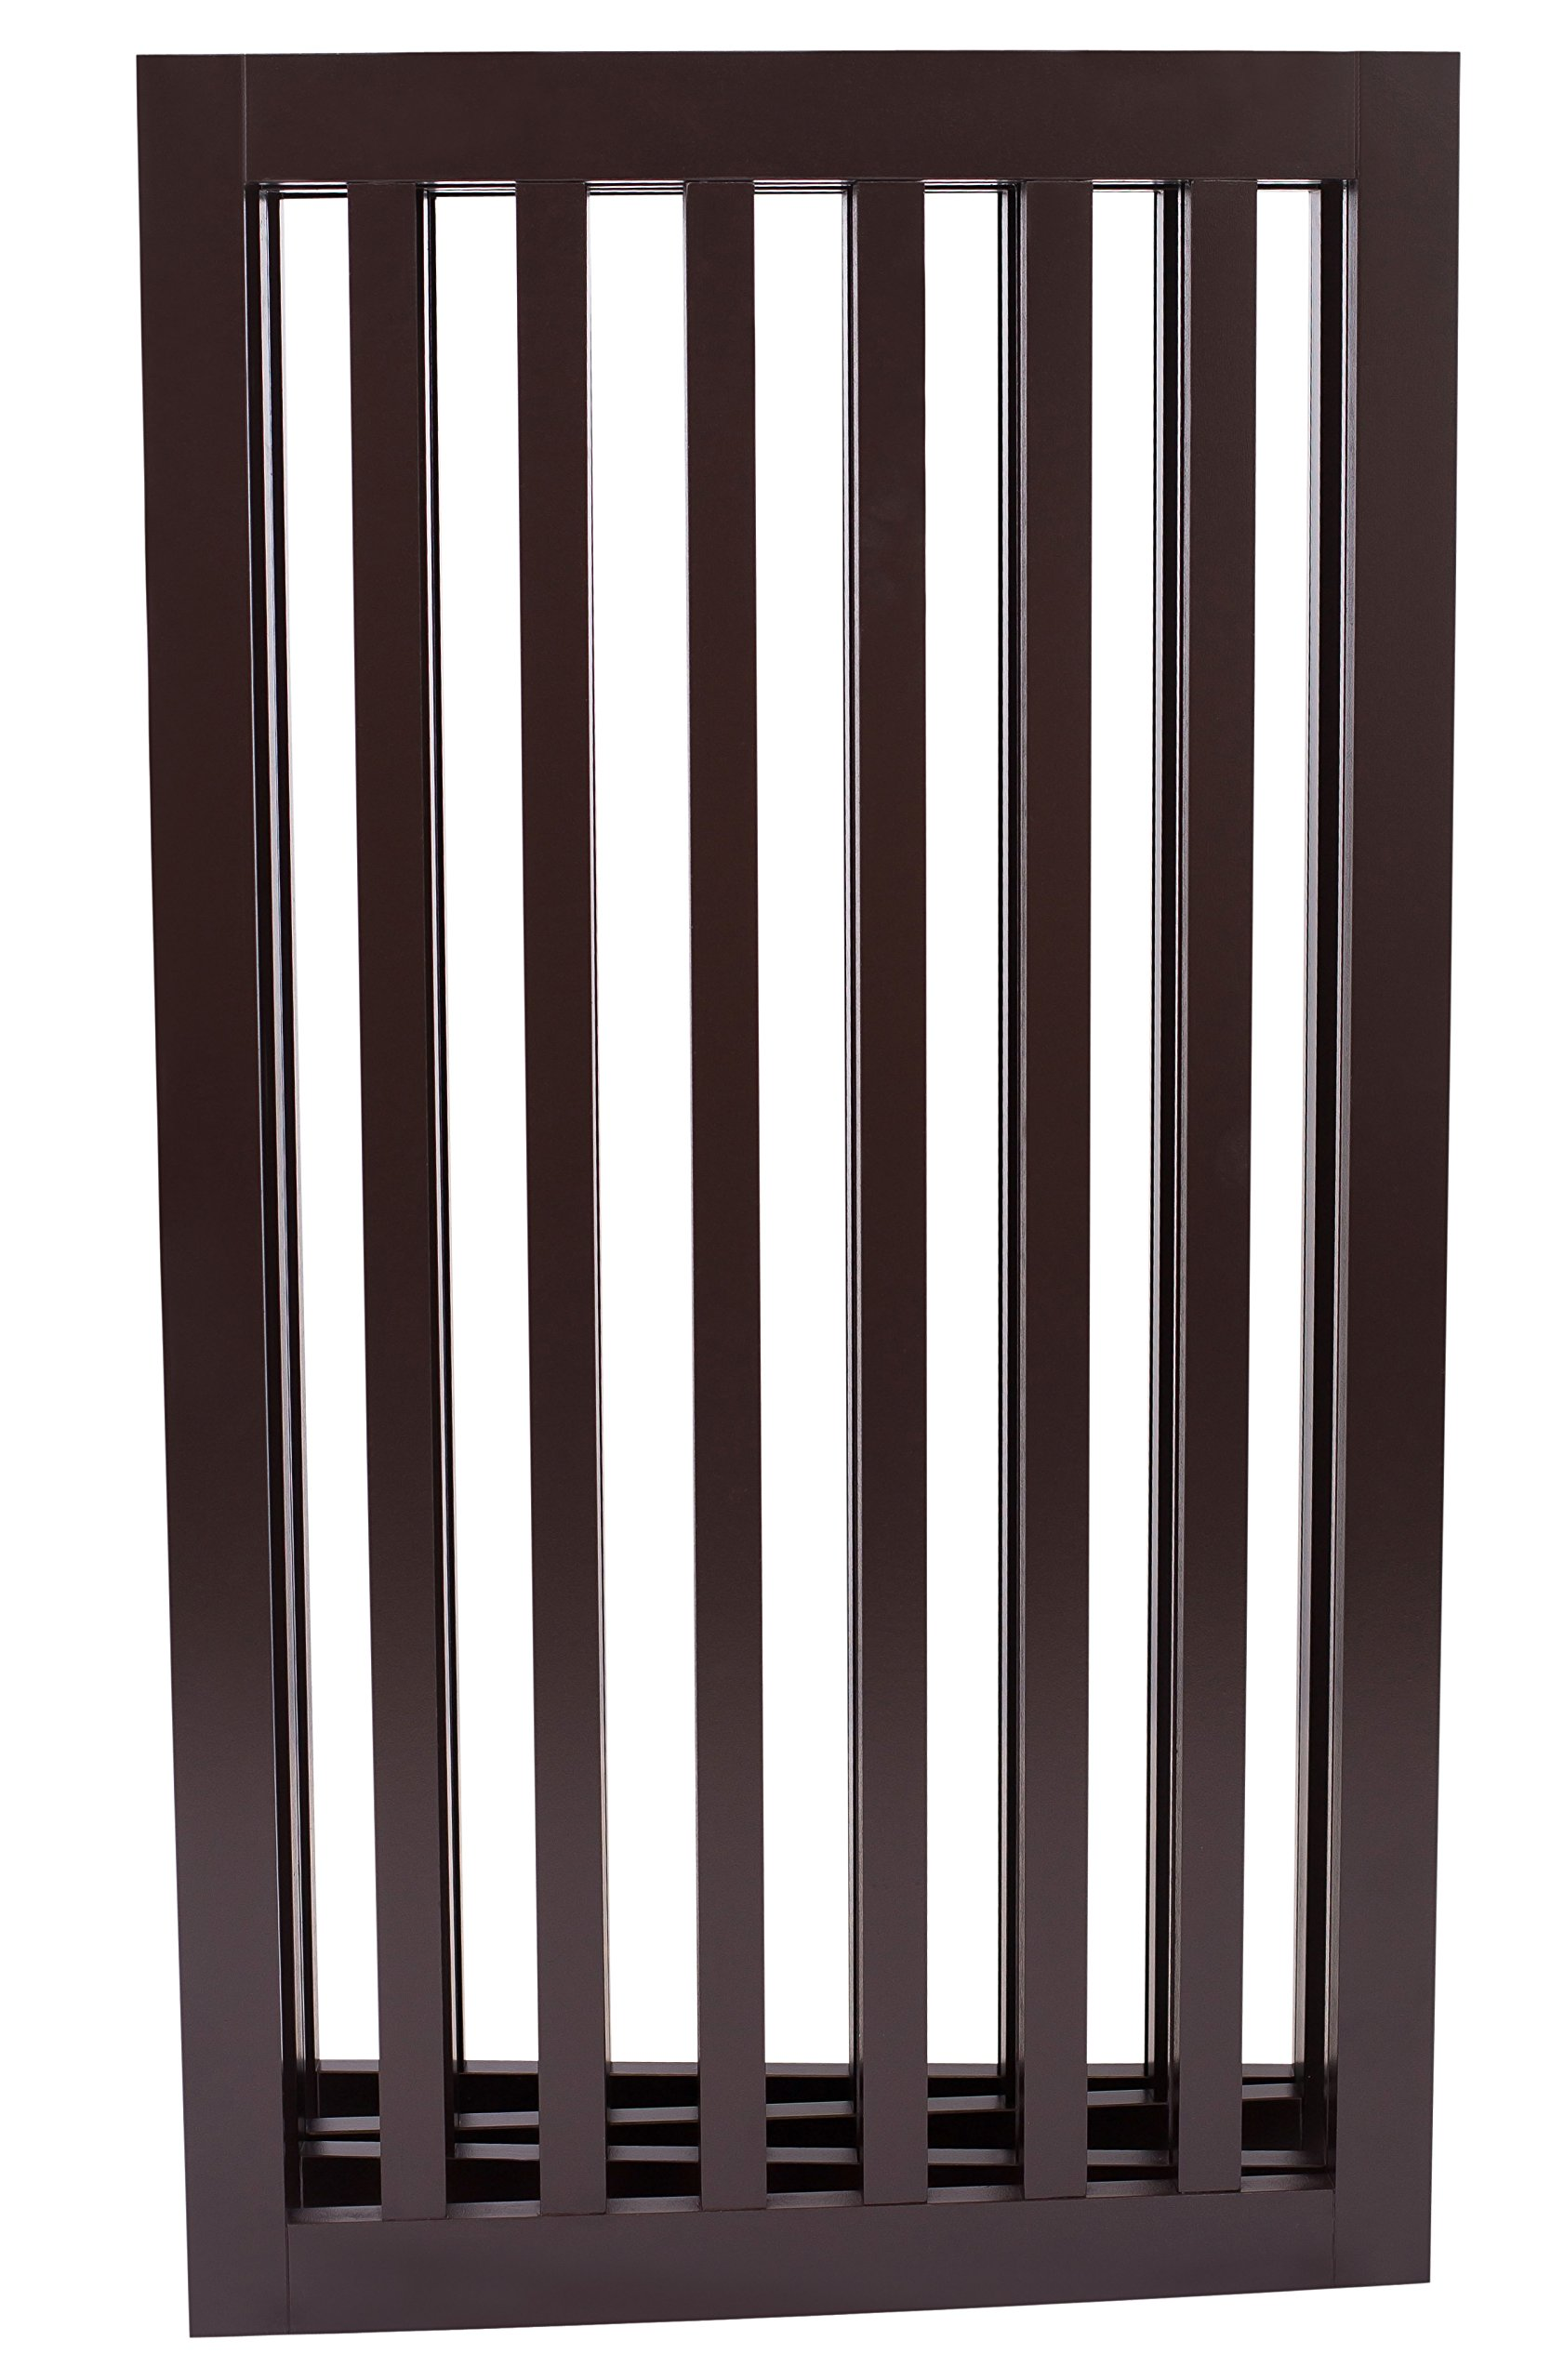 Internet's Best Traditional Pet Gate | 4 Panel | 36 Inch Tall Fence | Free Standing Folding Z Shape Indoor Doorway Hall Stairs Dog Puppy Gate | Fully Assembled | Espresso | Wooden by Internet's Best (Image #2)